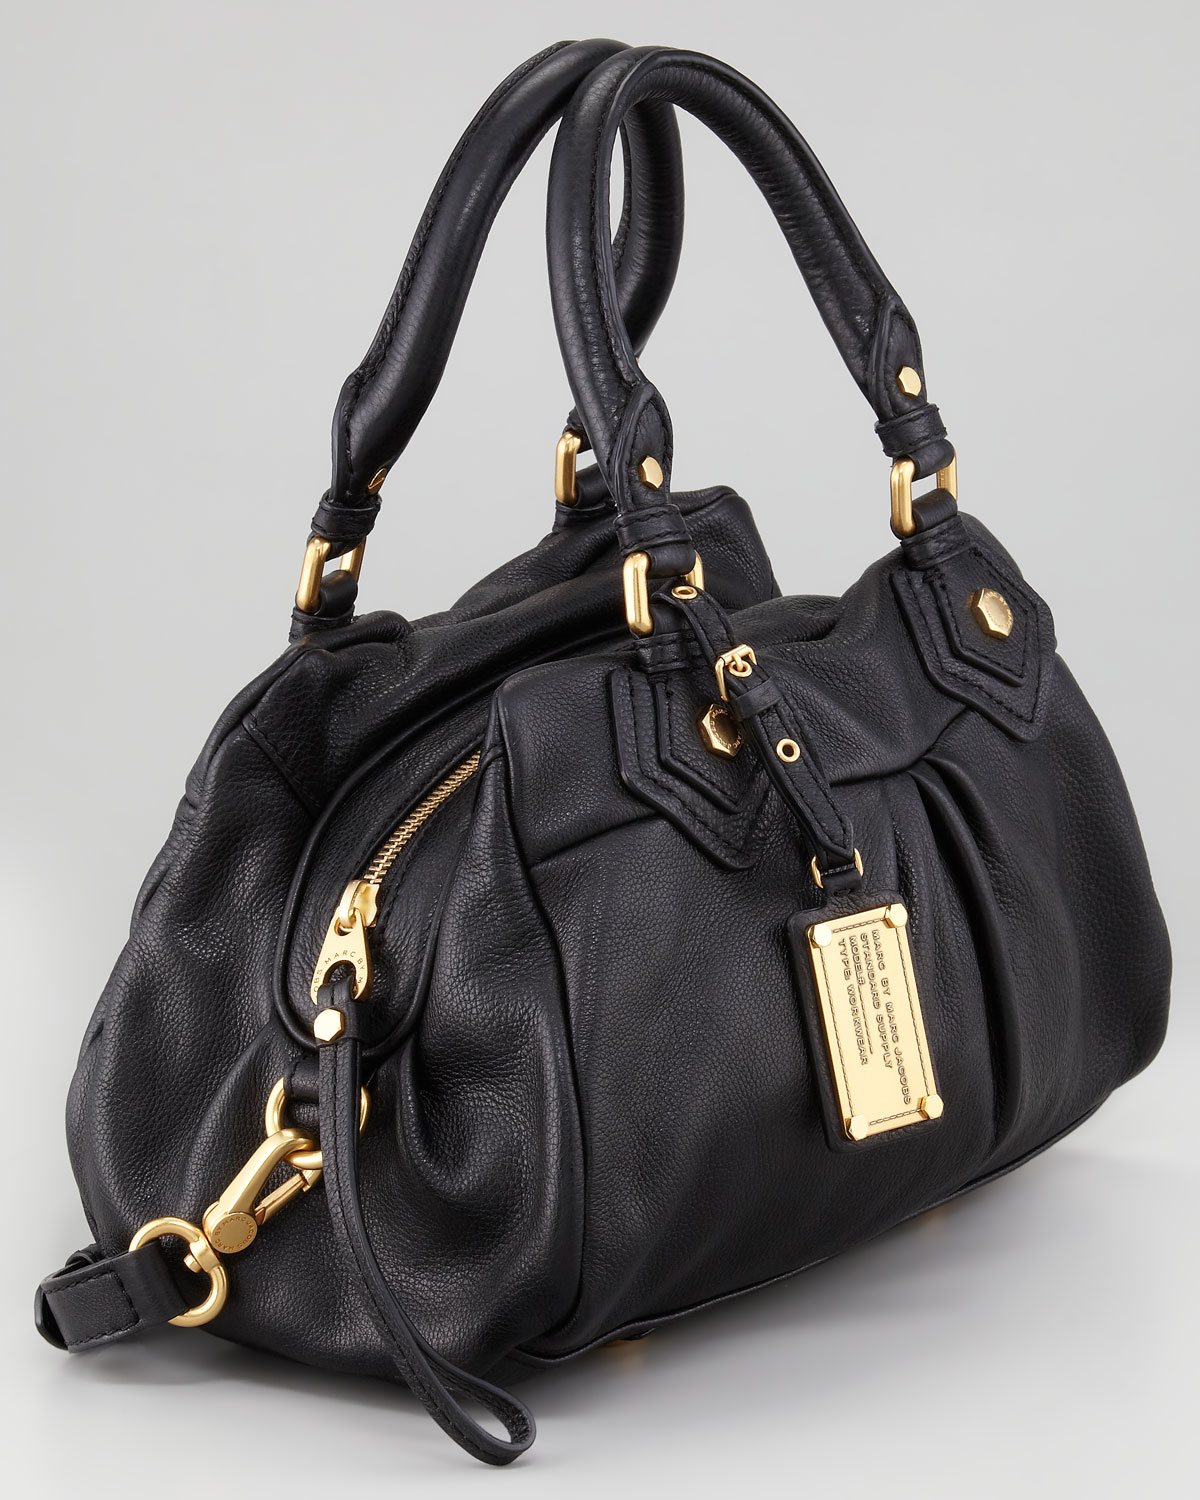 Marc by marc jacobs Classic Q Baby Groovee Satchel Bag Black in ...